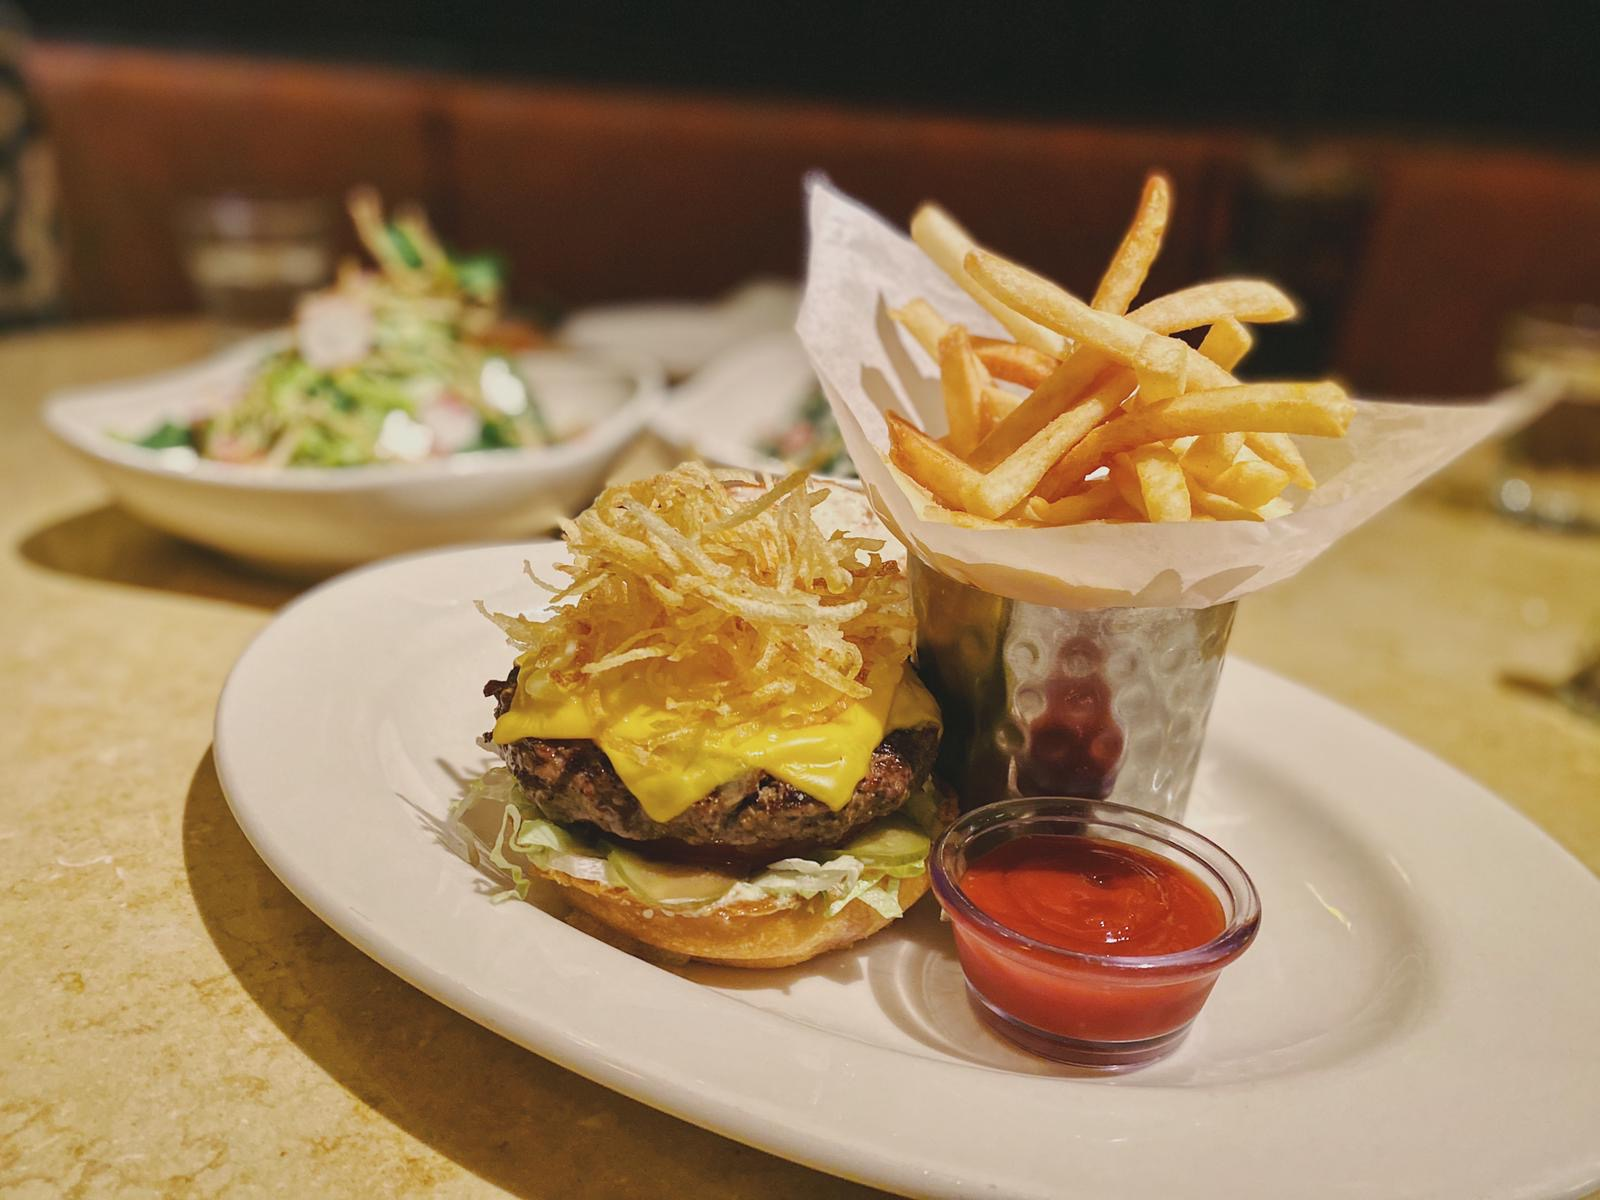 American Burger from Cheesecake Factory with Fries Macau Lifestyle